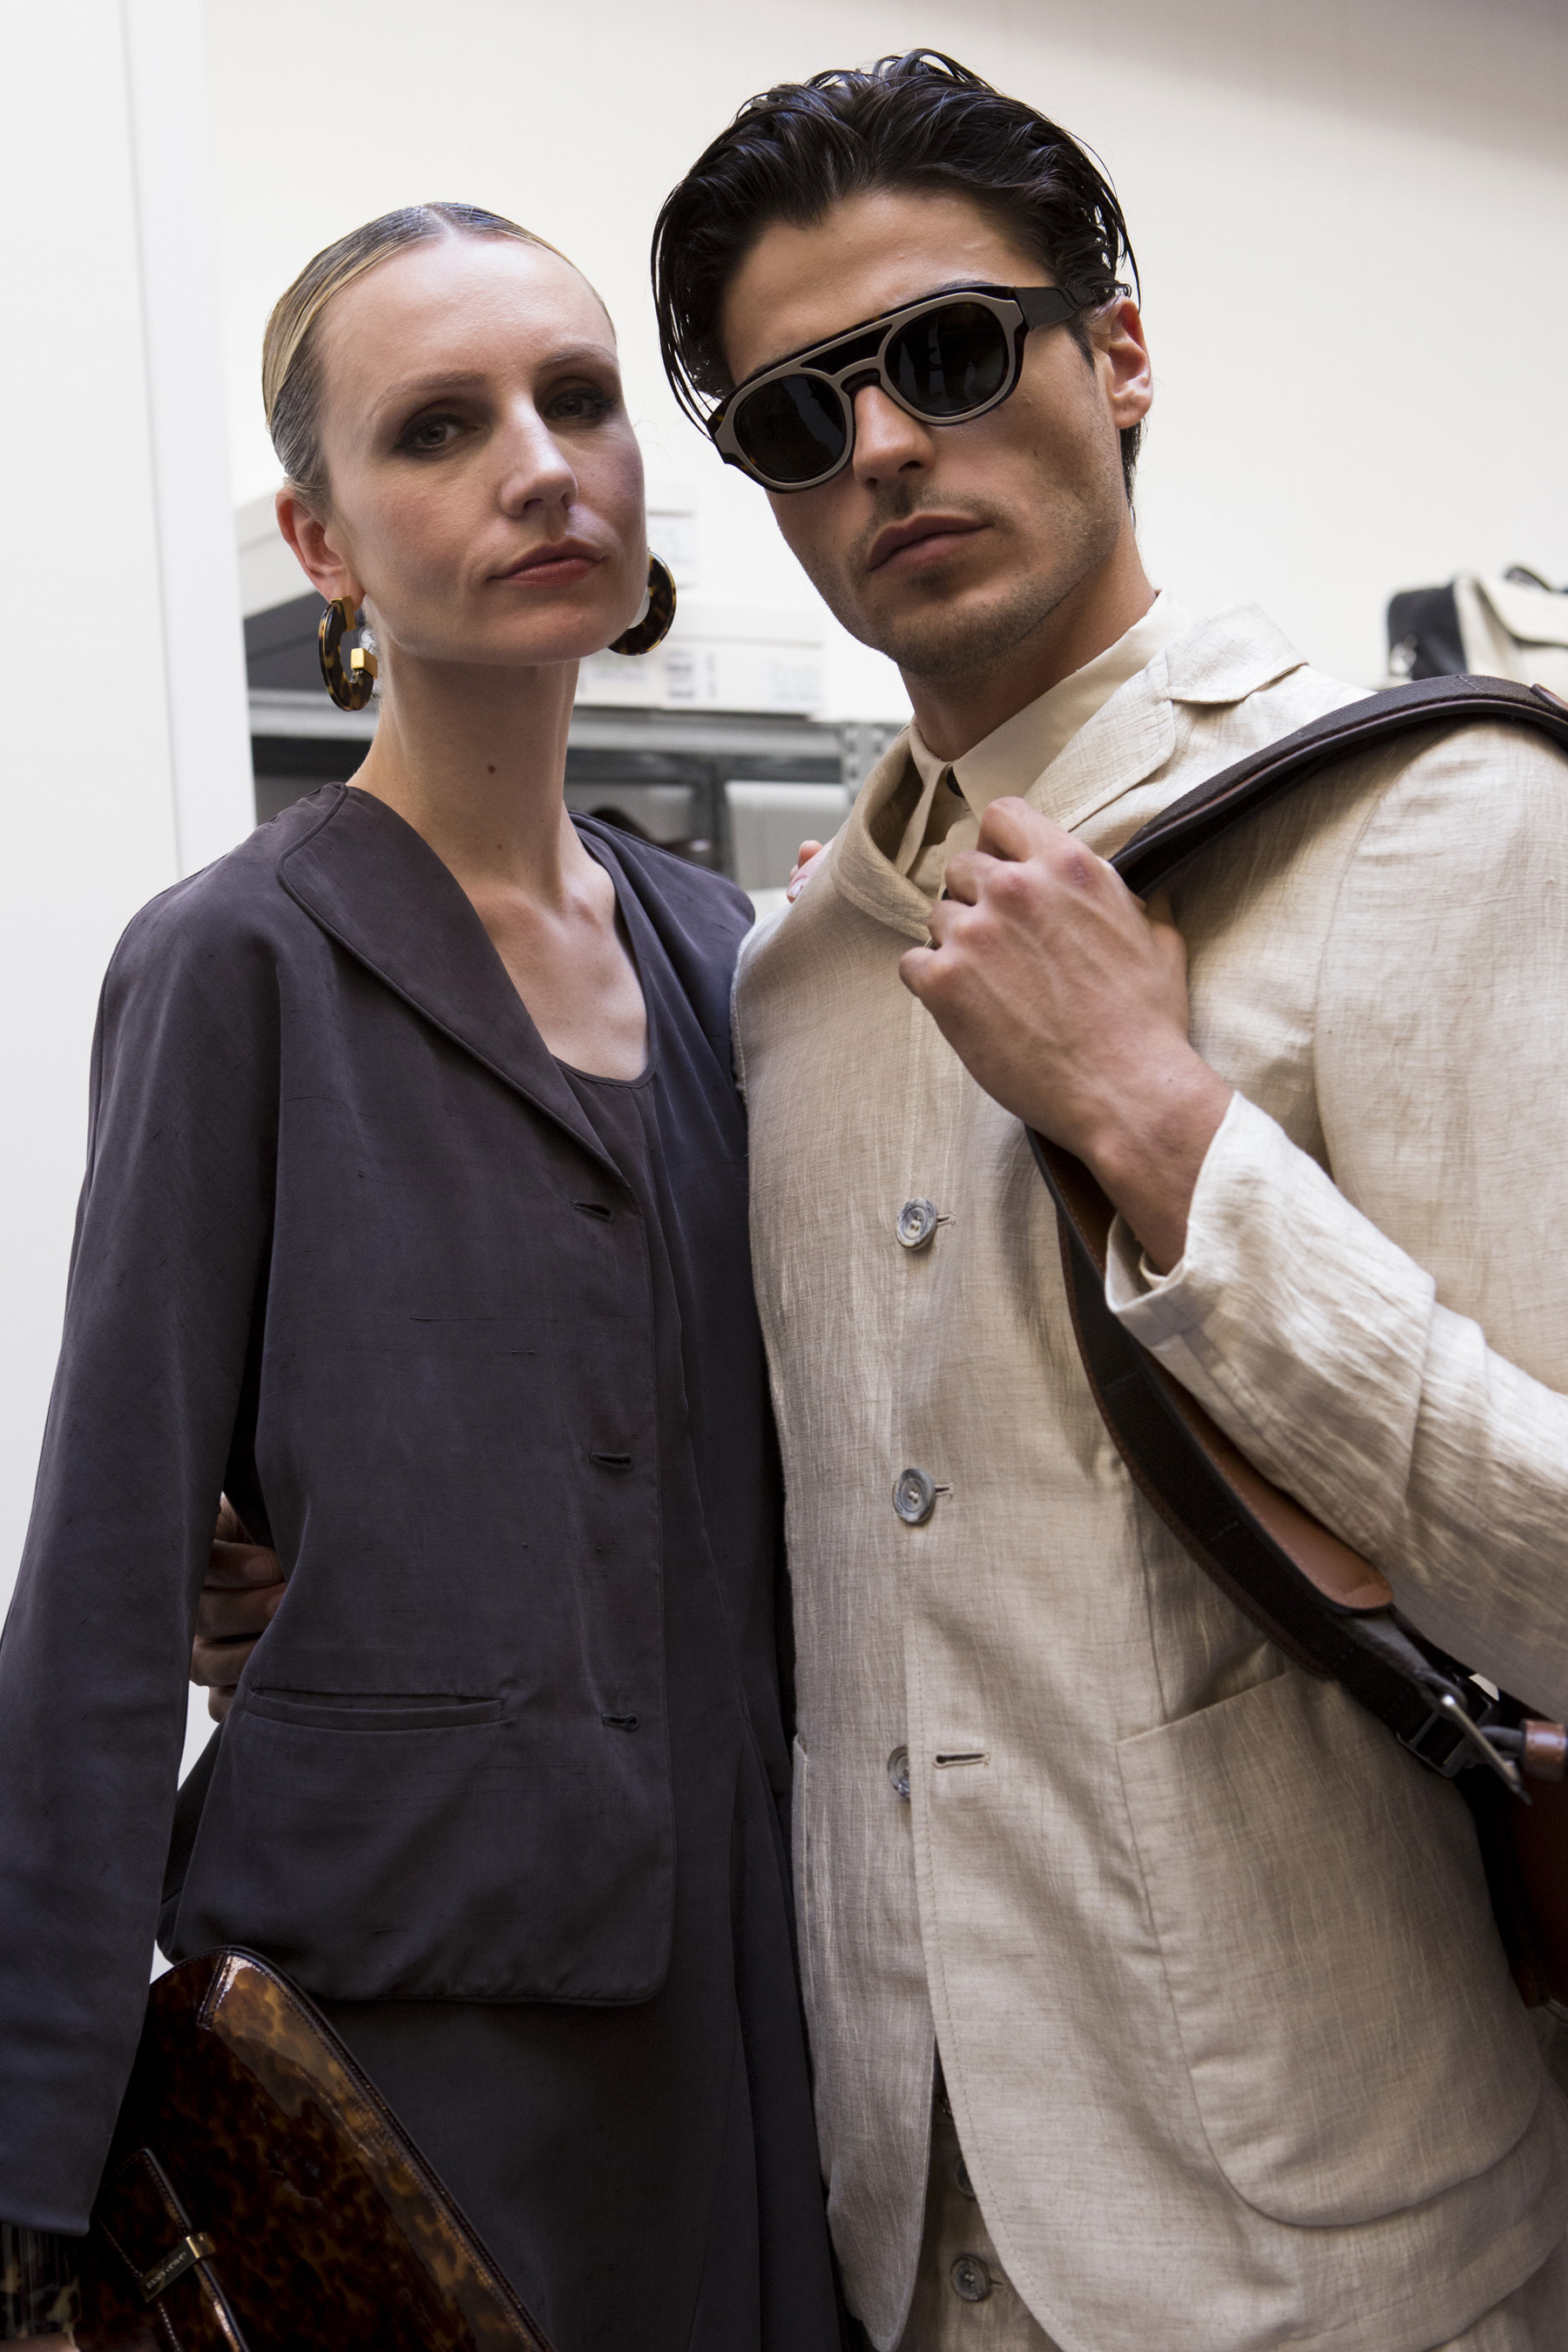 Giorgio Armani Spring 2020 Men's Fashion Show Backstage